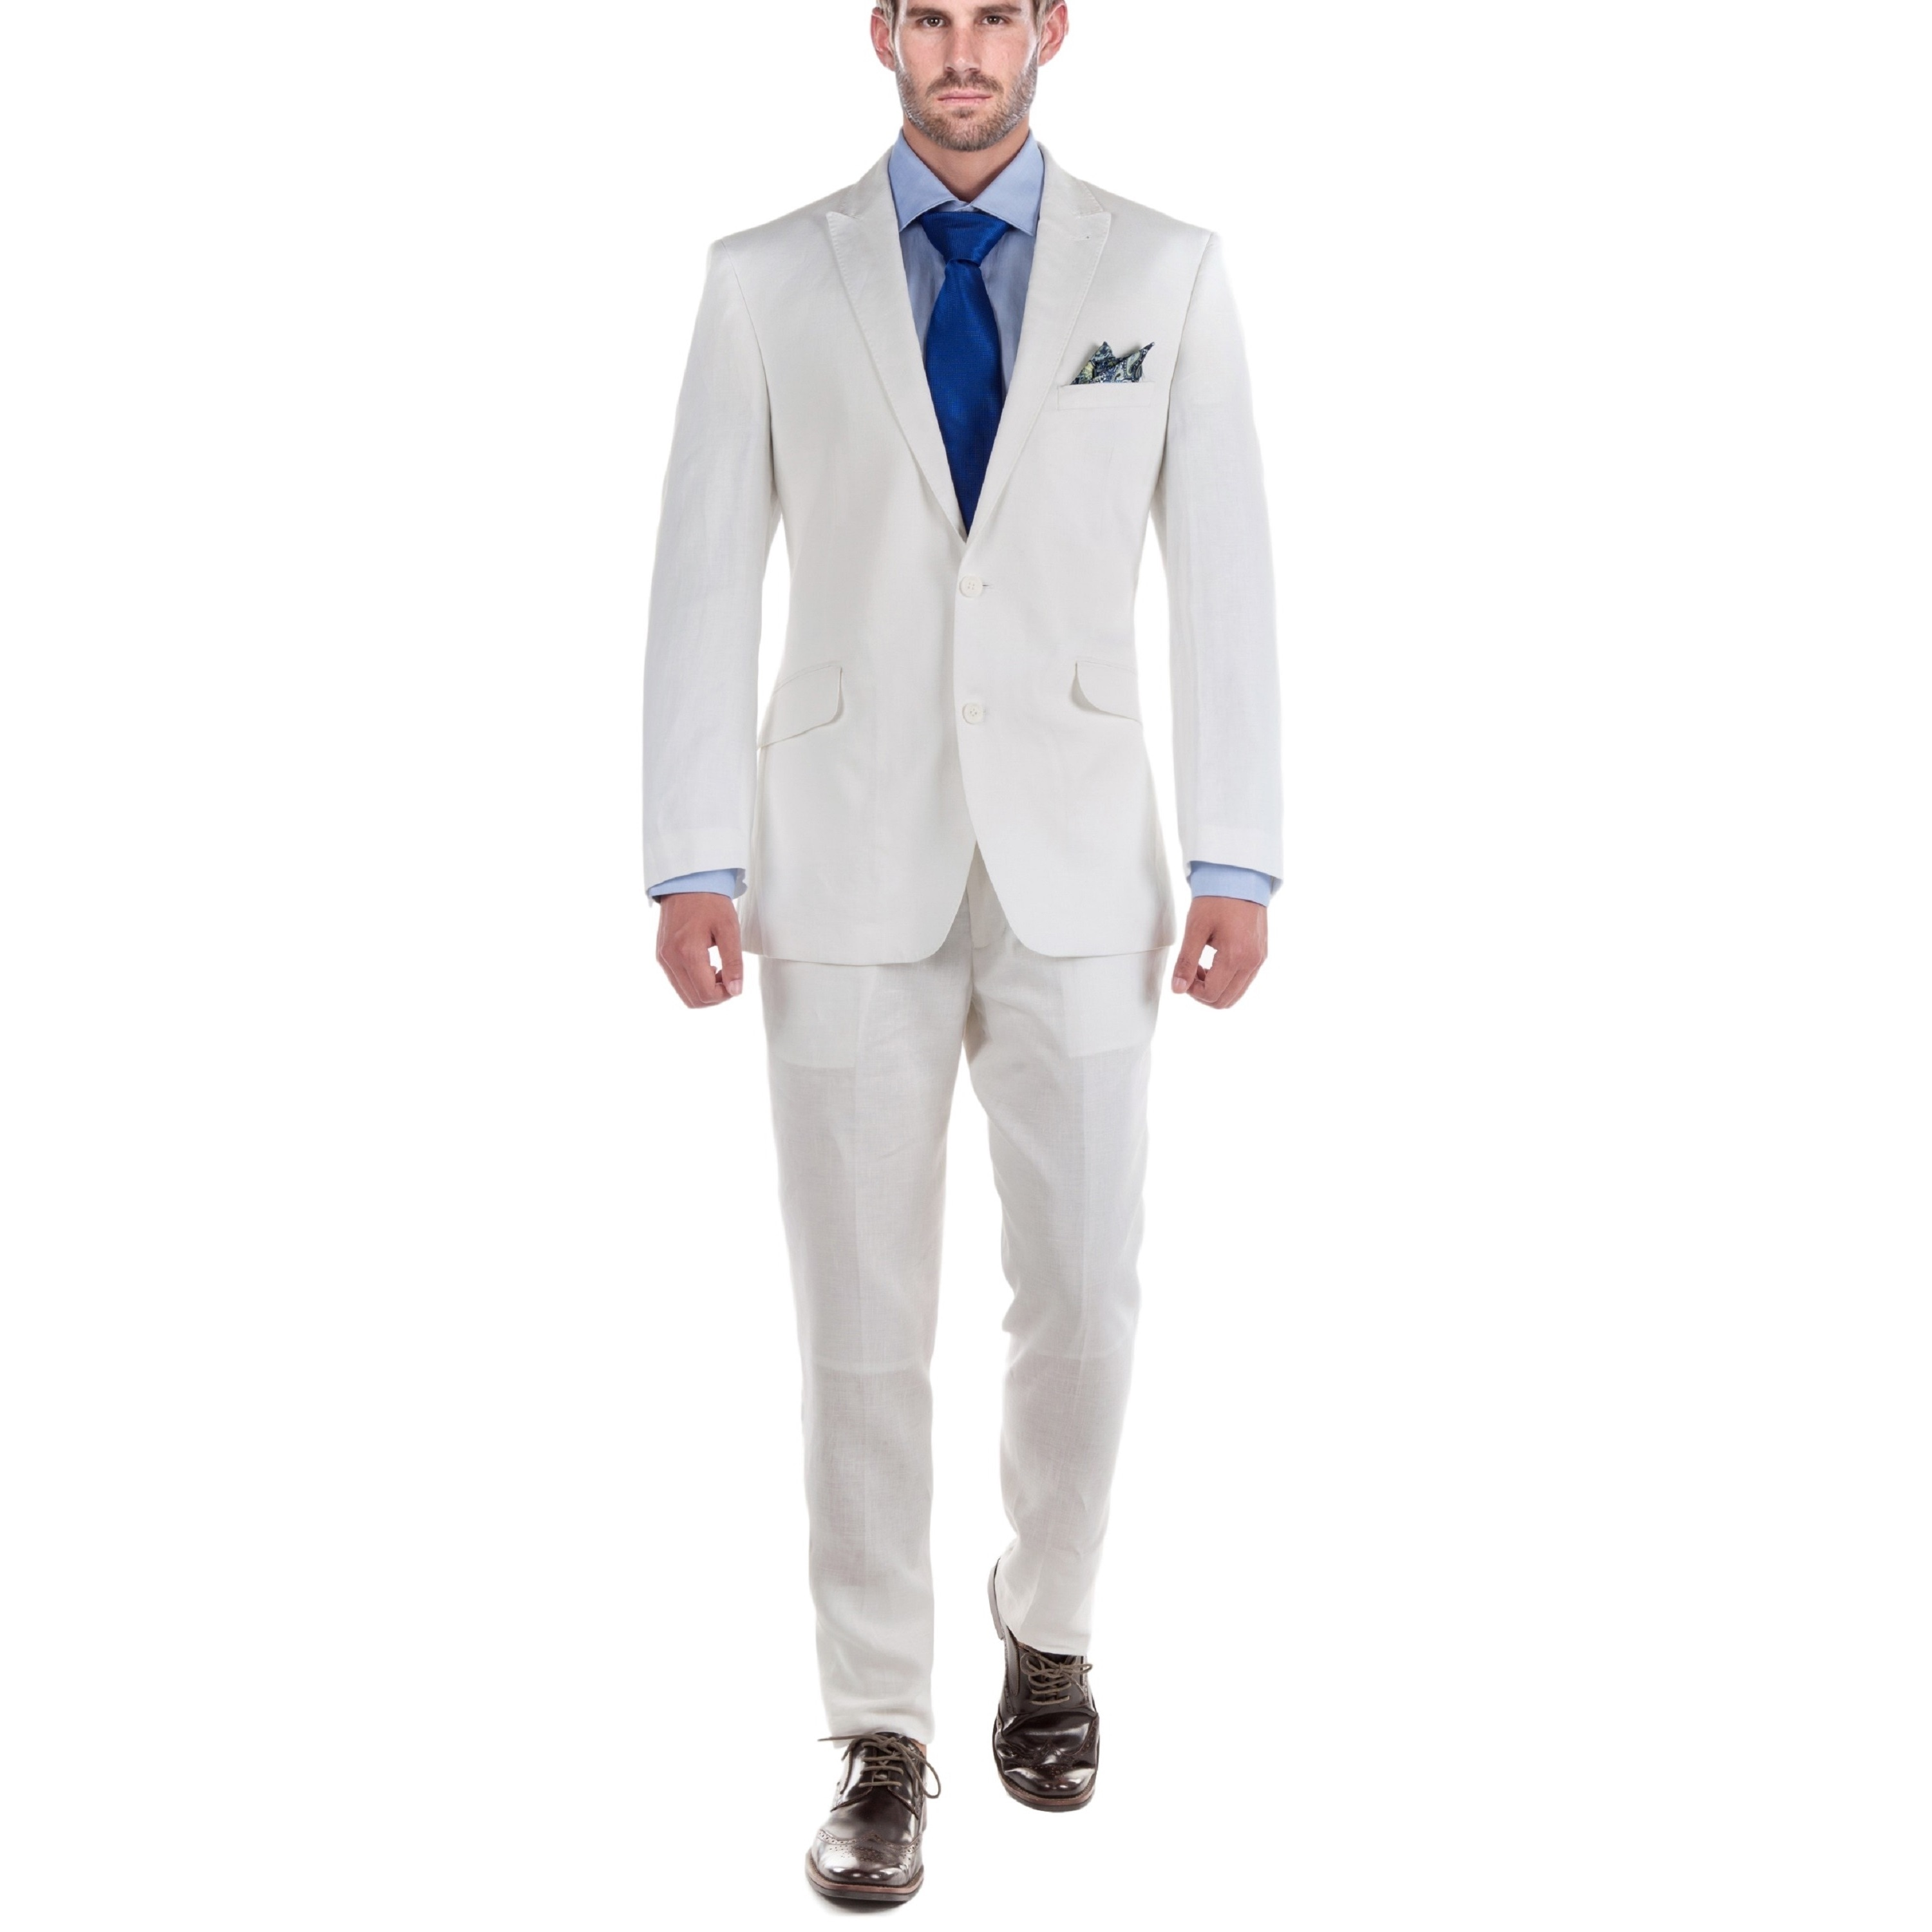 bf8b32d3c19 Shop Verno Men s White 100% Linen 2-piece Classic-fit Peak-lapel Jacket and  Pants Suit - Free Shipping Today - Overstock - 13579026